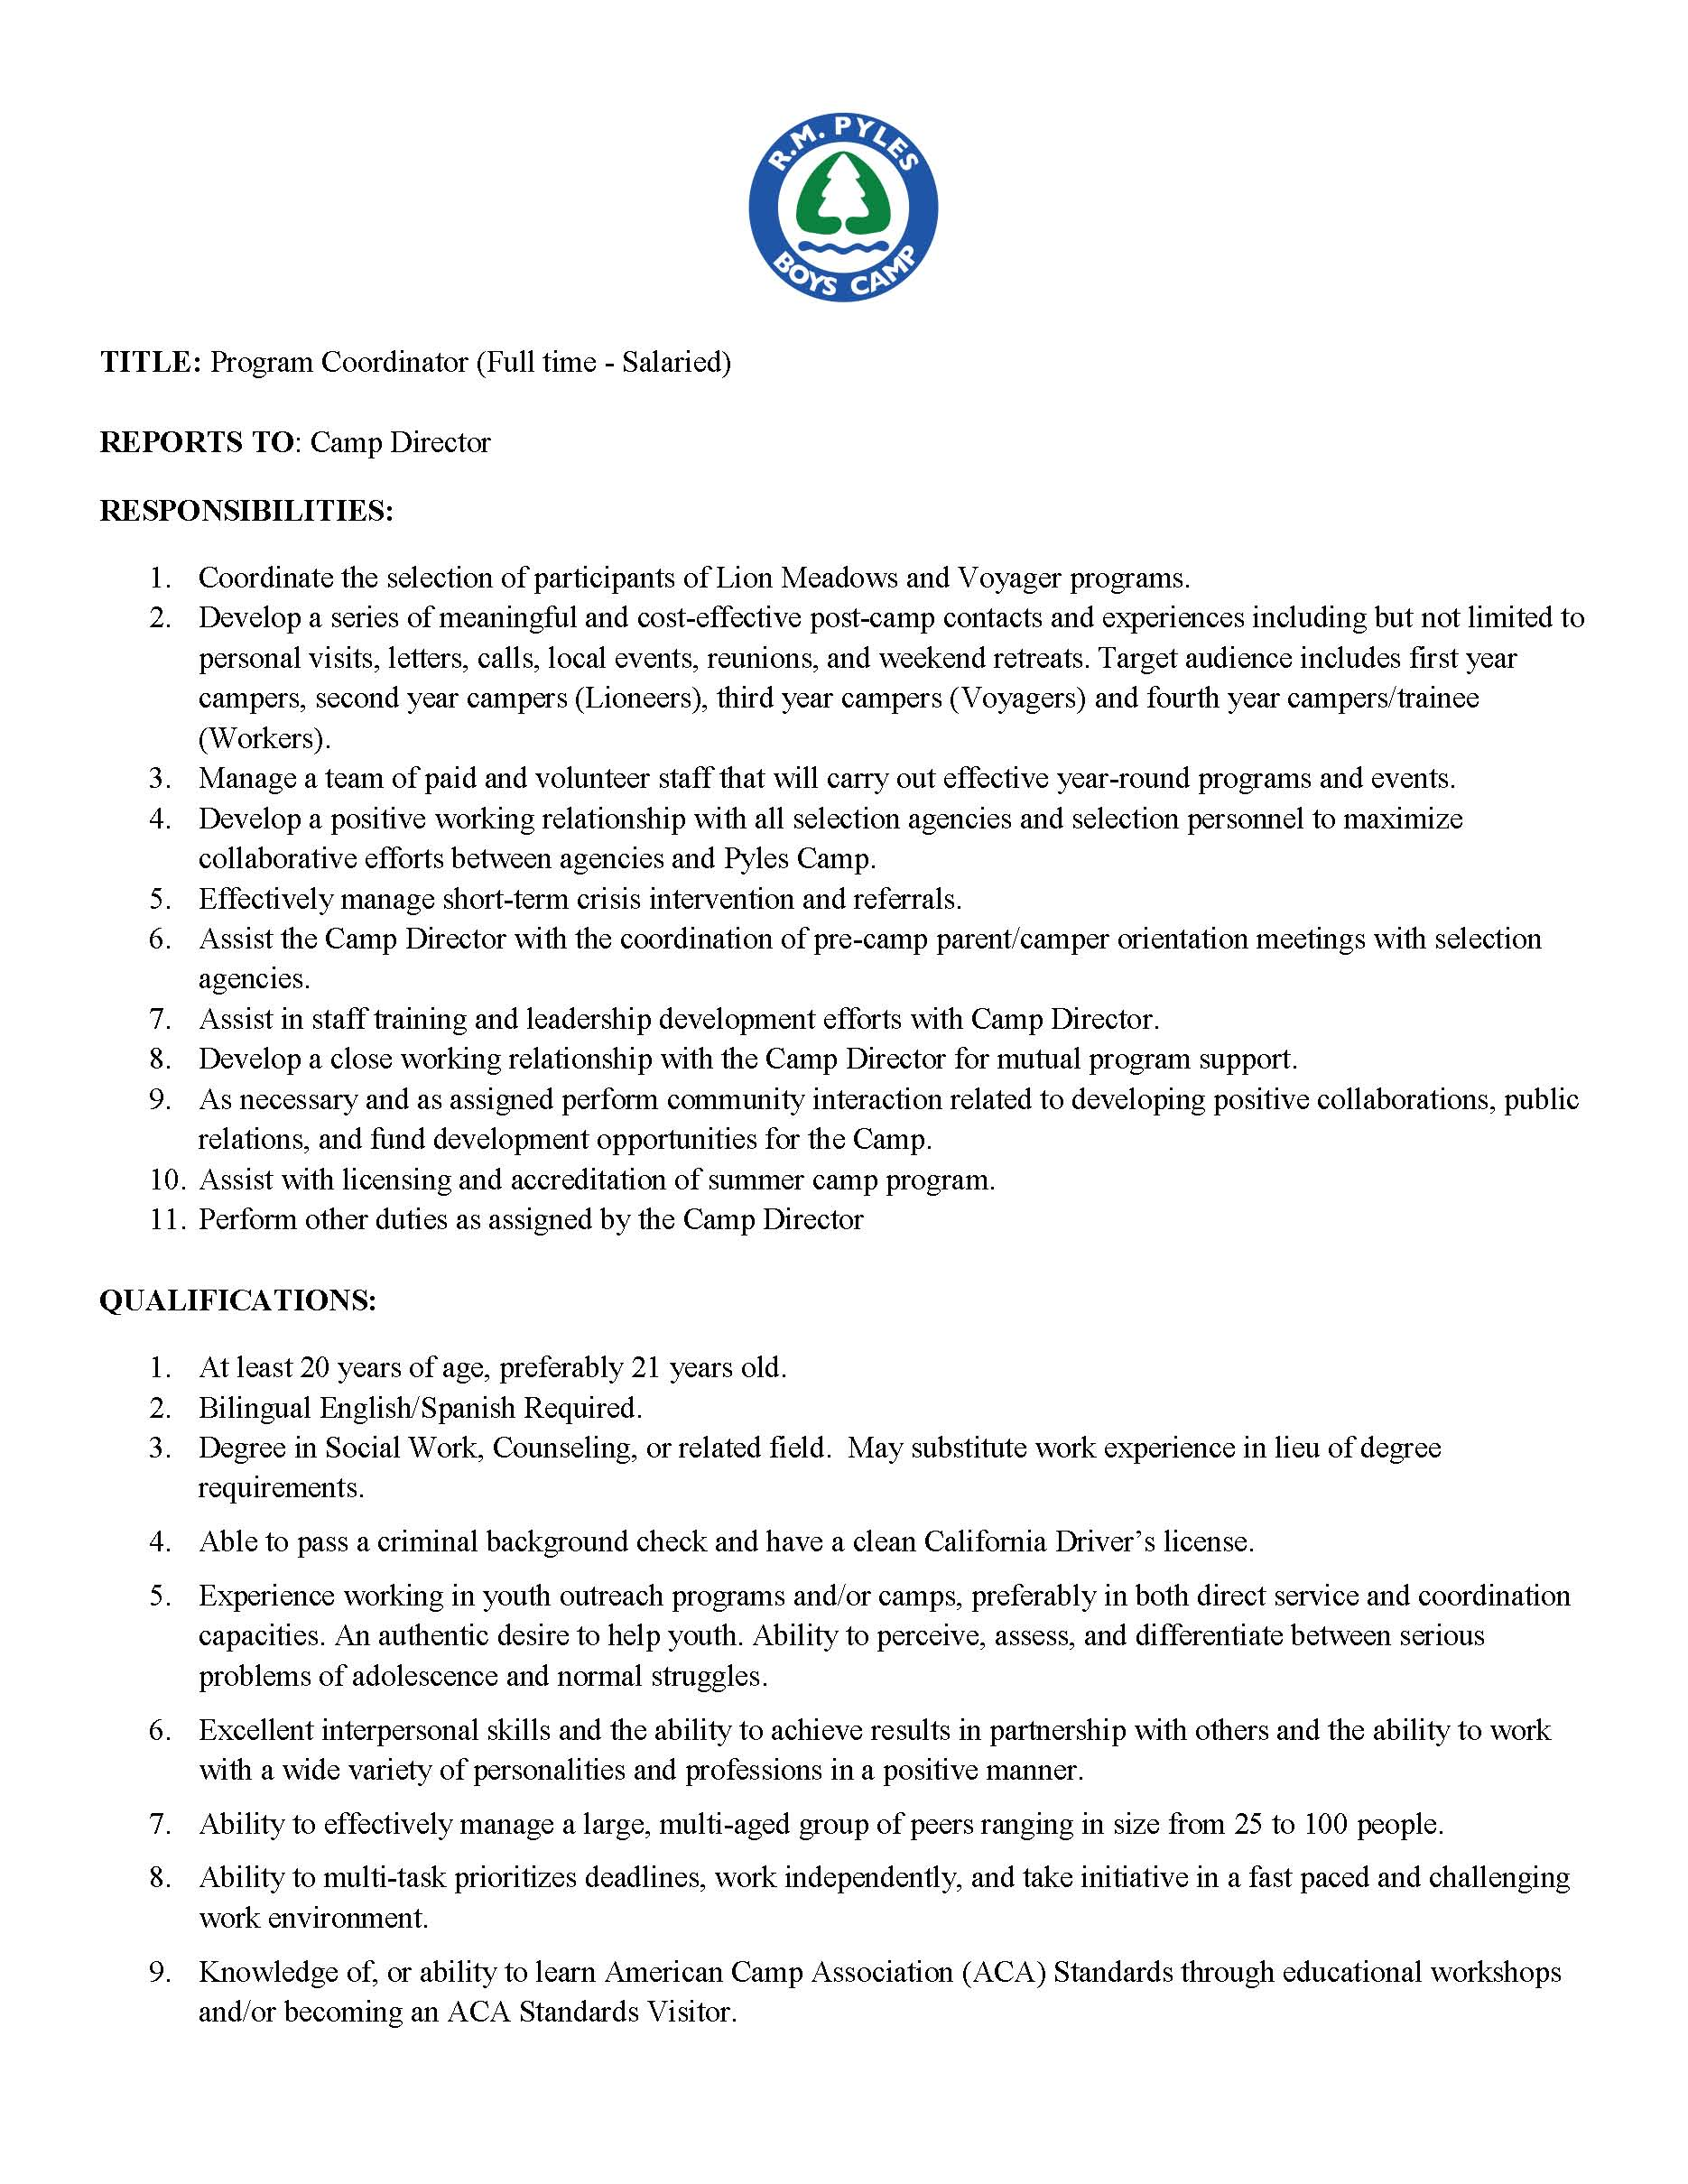 2019 Pyles Camp Program Coordinator Job Description_Page_1.jpg